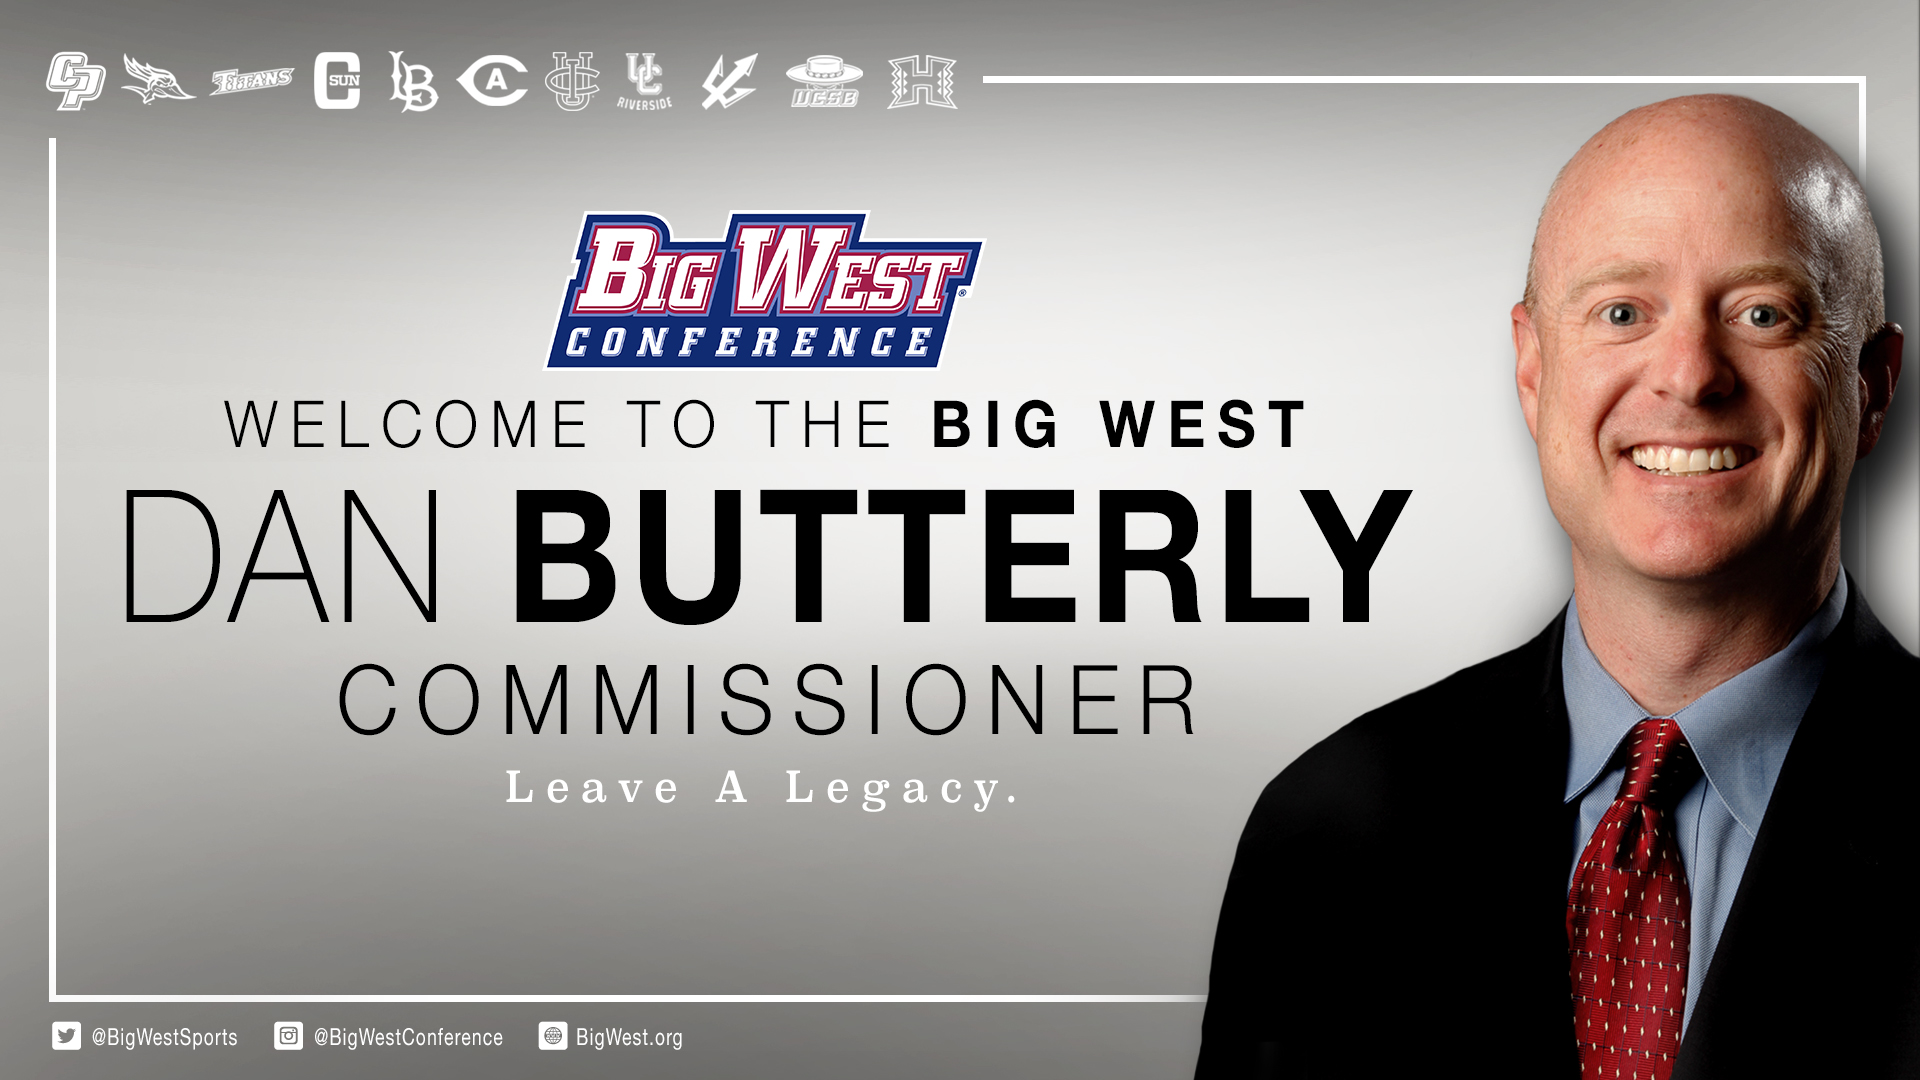 BUTTERLY NAMED FIFTH COMMISSIONER OF BIG WEST CONFERENCE